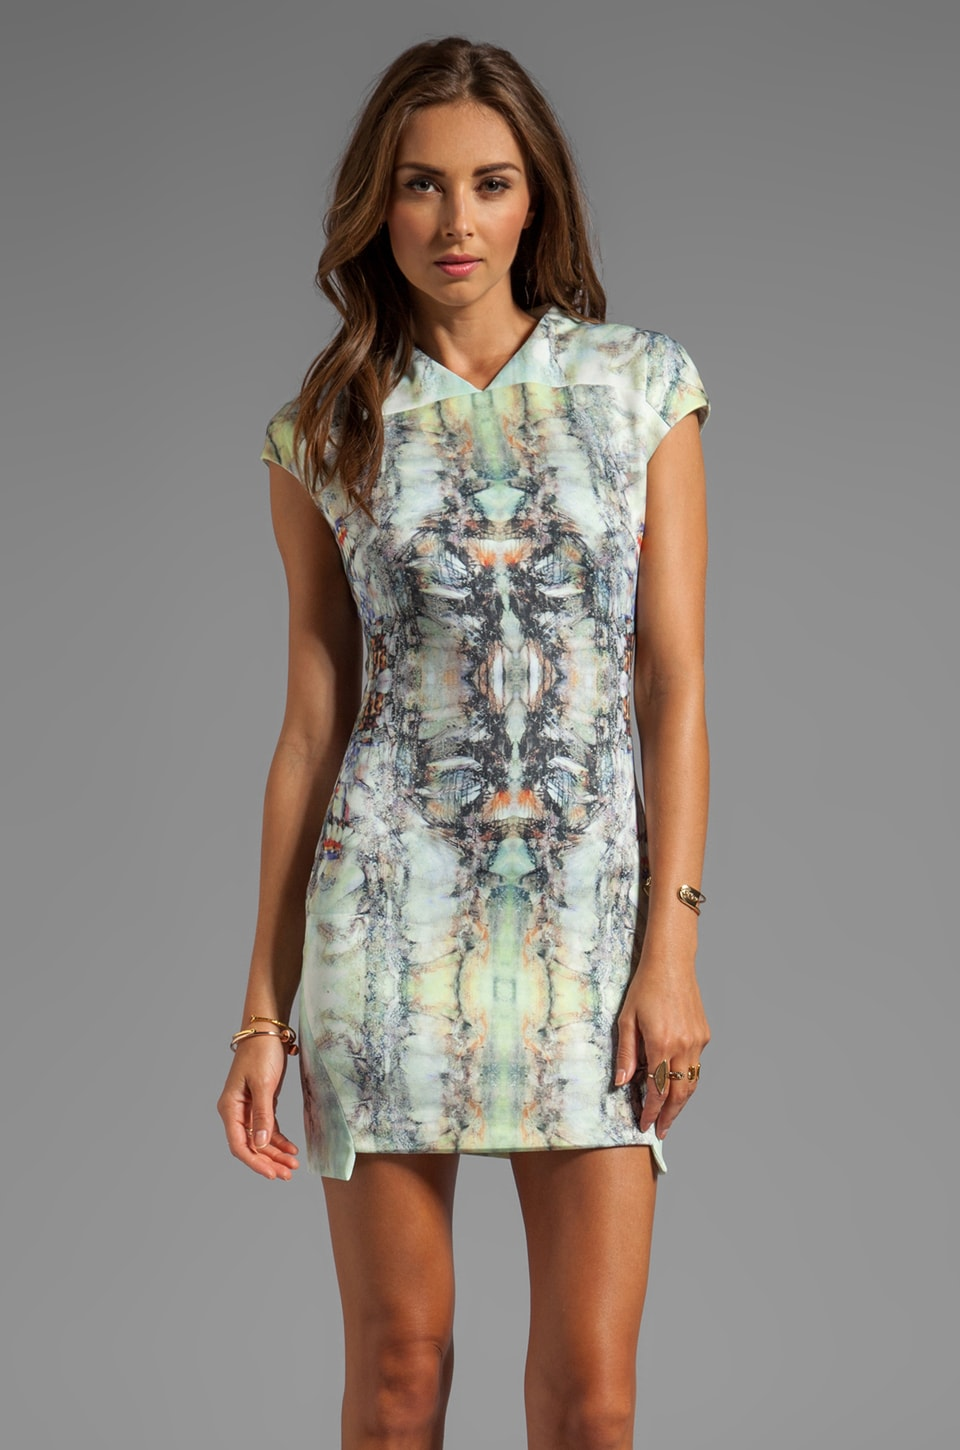 Funktional Evolution Cap Sleeve Dress in Evo